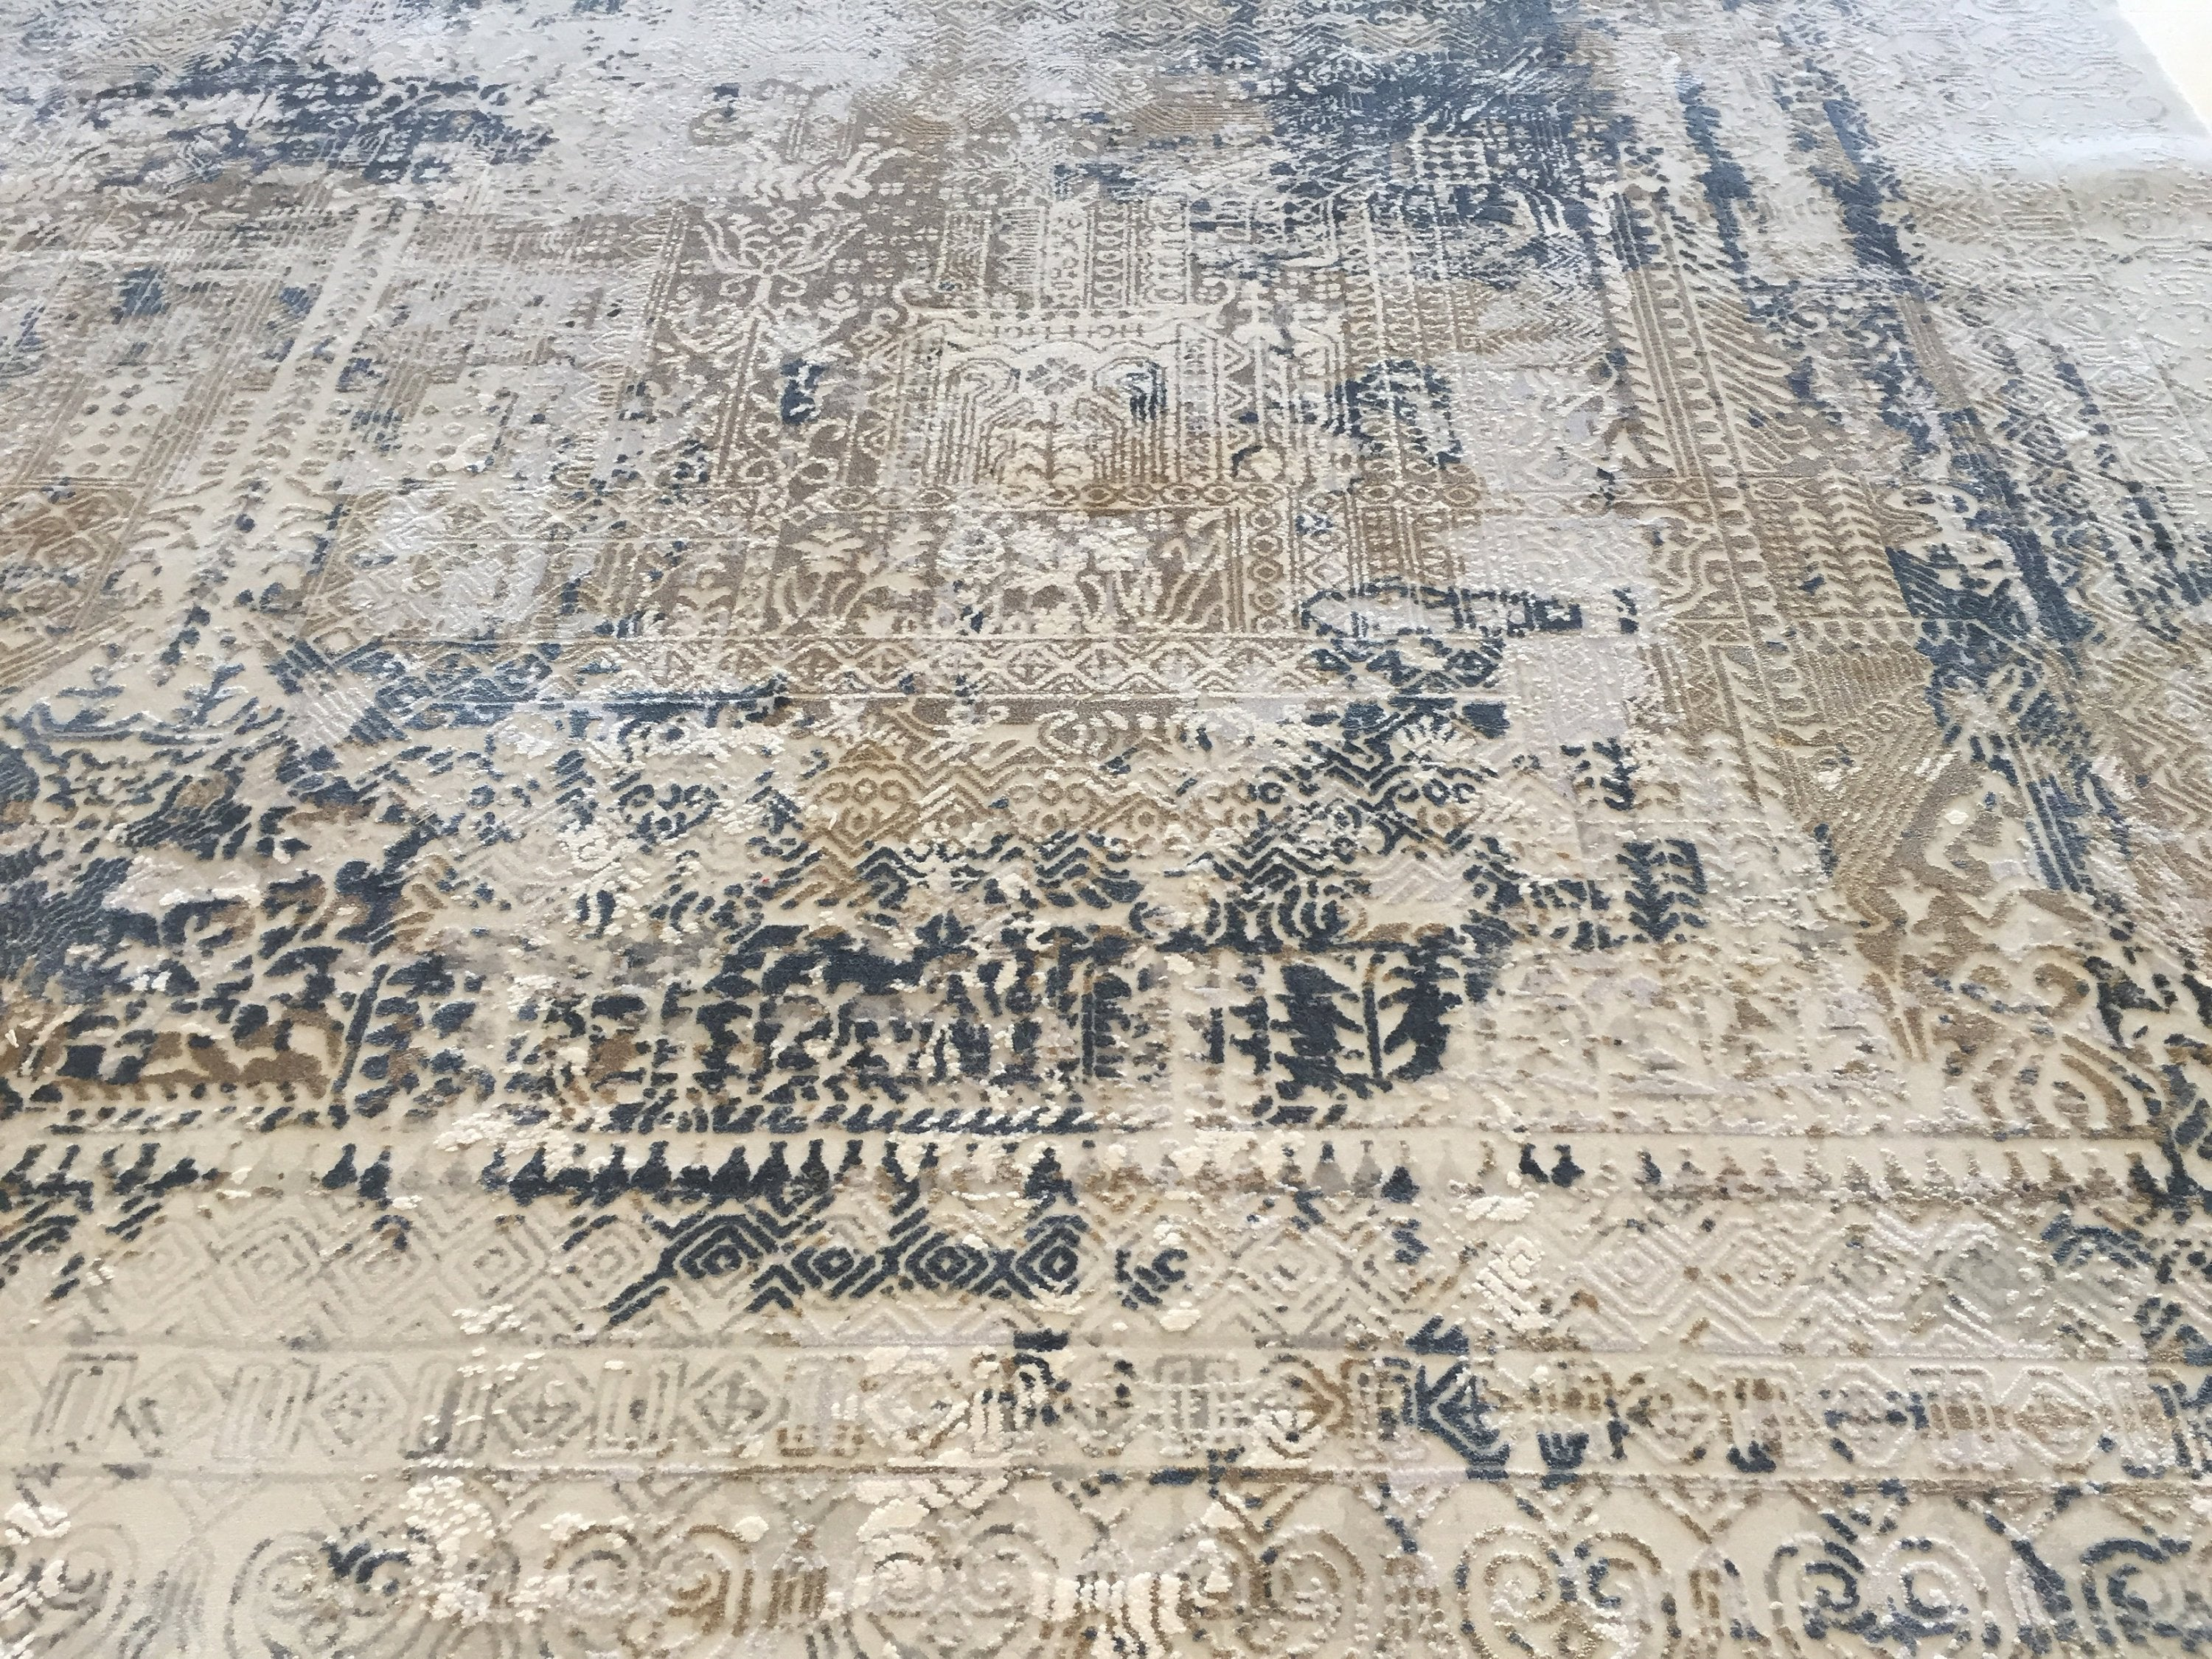 "Distressed Faded Tribal Persian Vintage looking Home Decor Rug, Wool Hand knotted Geometric Rug, Rustic colorful Area Rug 6'6"" X 9'6"" MC2"